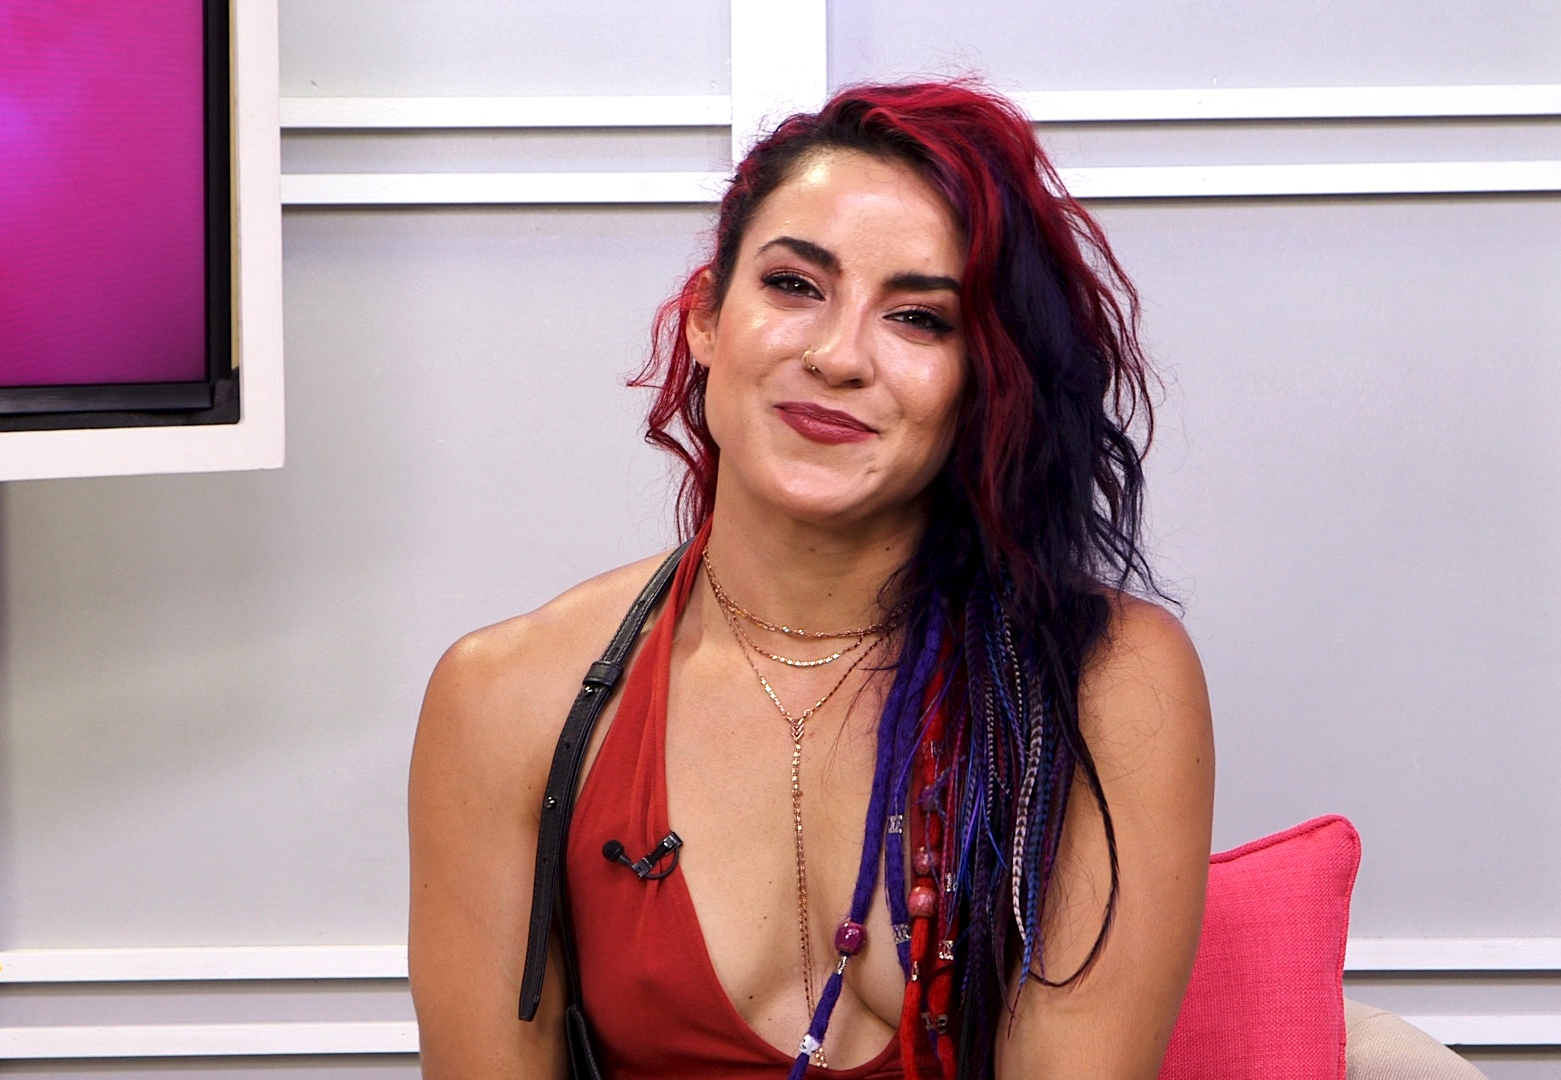 bra Leaked Cara Maria Sobello naked photo 2017